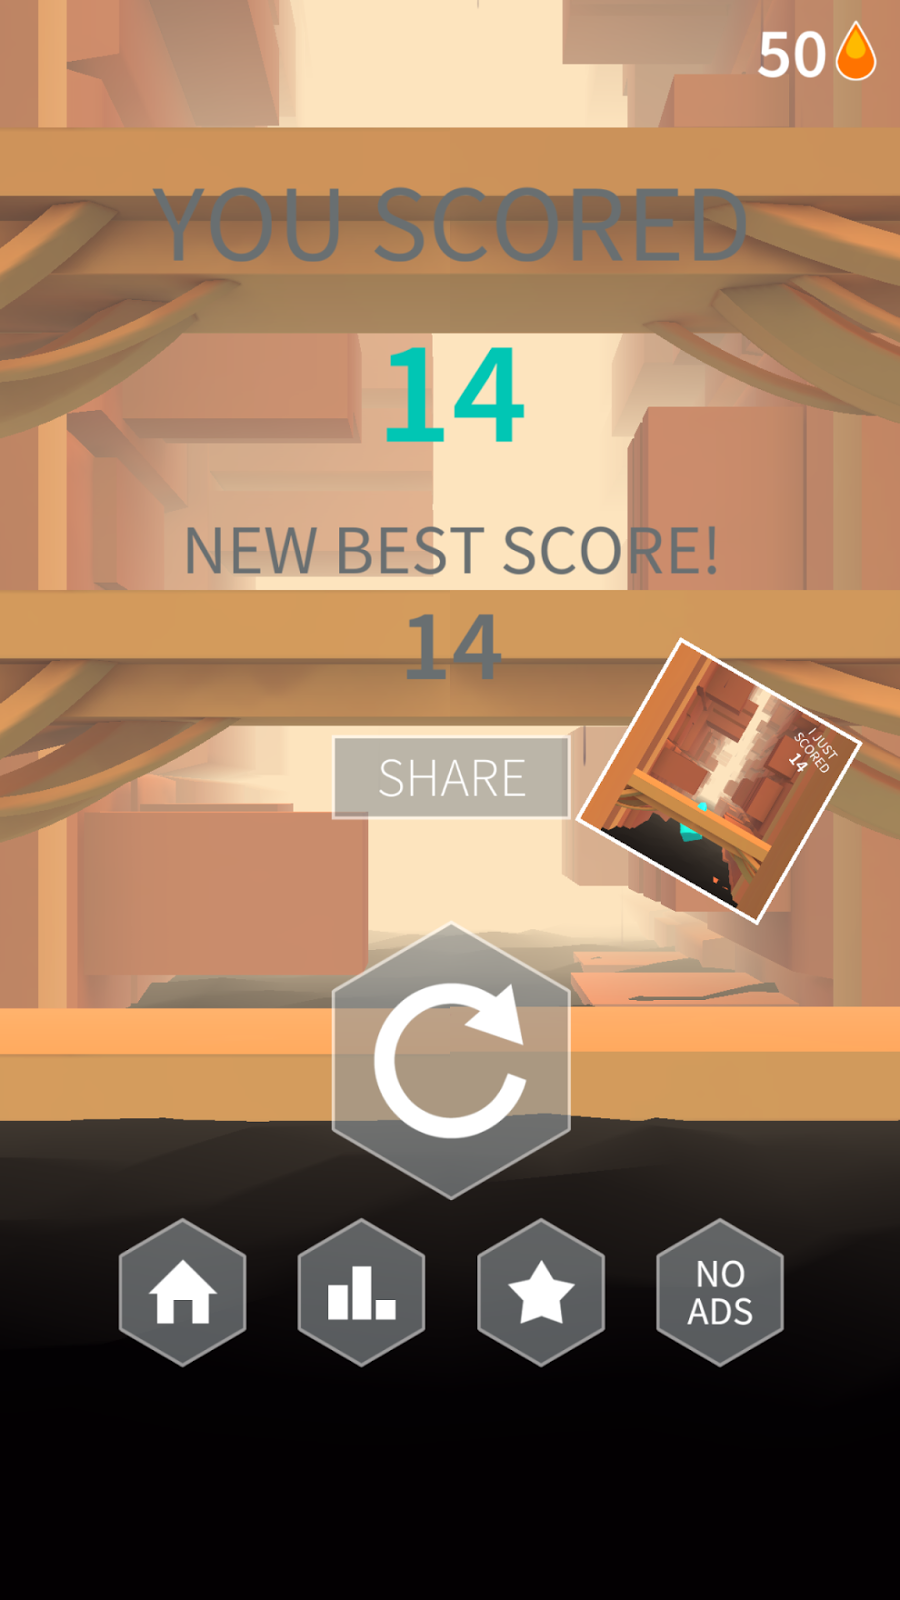 Fun addicting game apps -  Fun And Addictive Game From Ketchapp Jump Higher Survive Longer And Never Give Up I My Self After Some Time Can Only Get 14 As My Highest Score